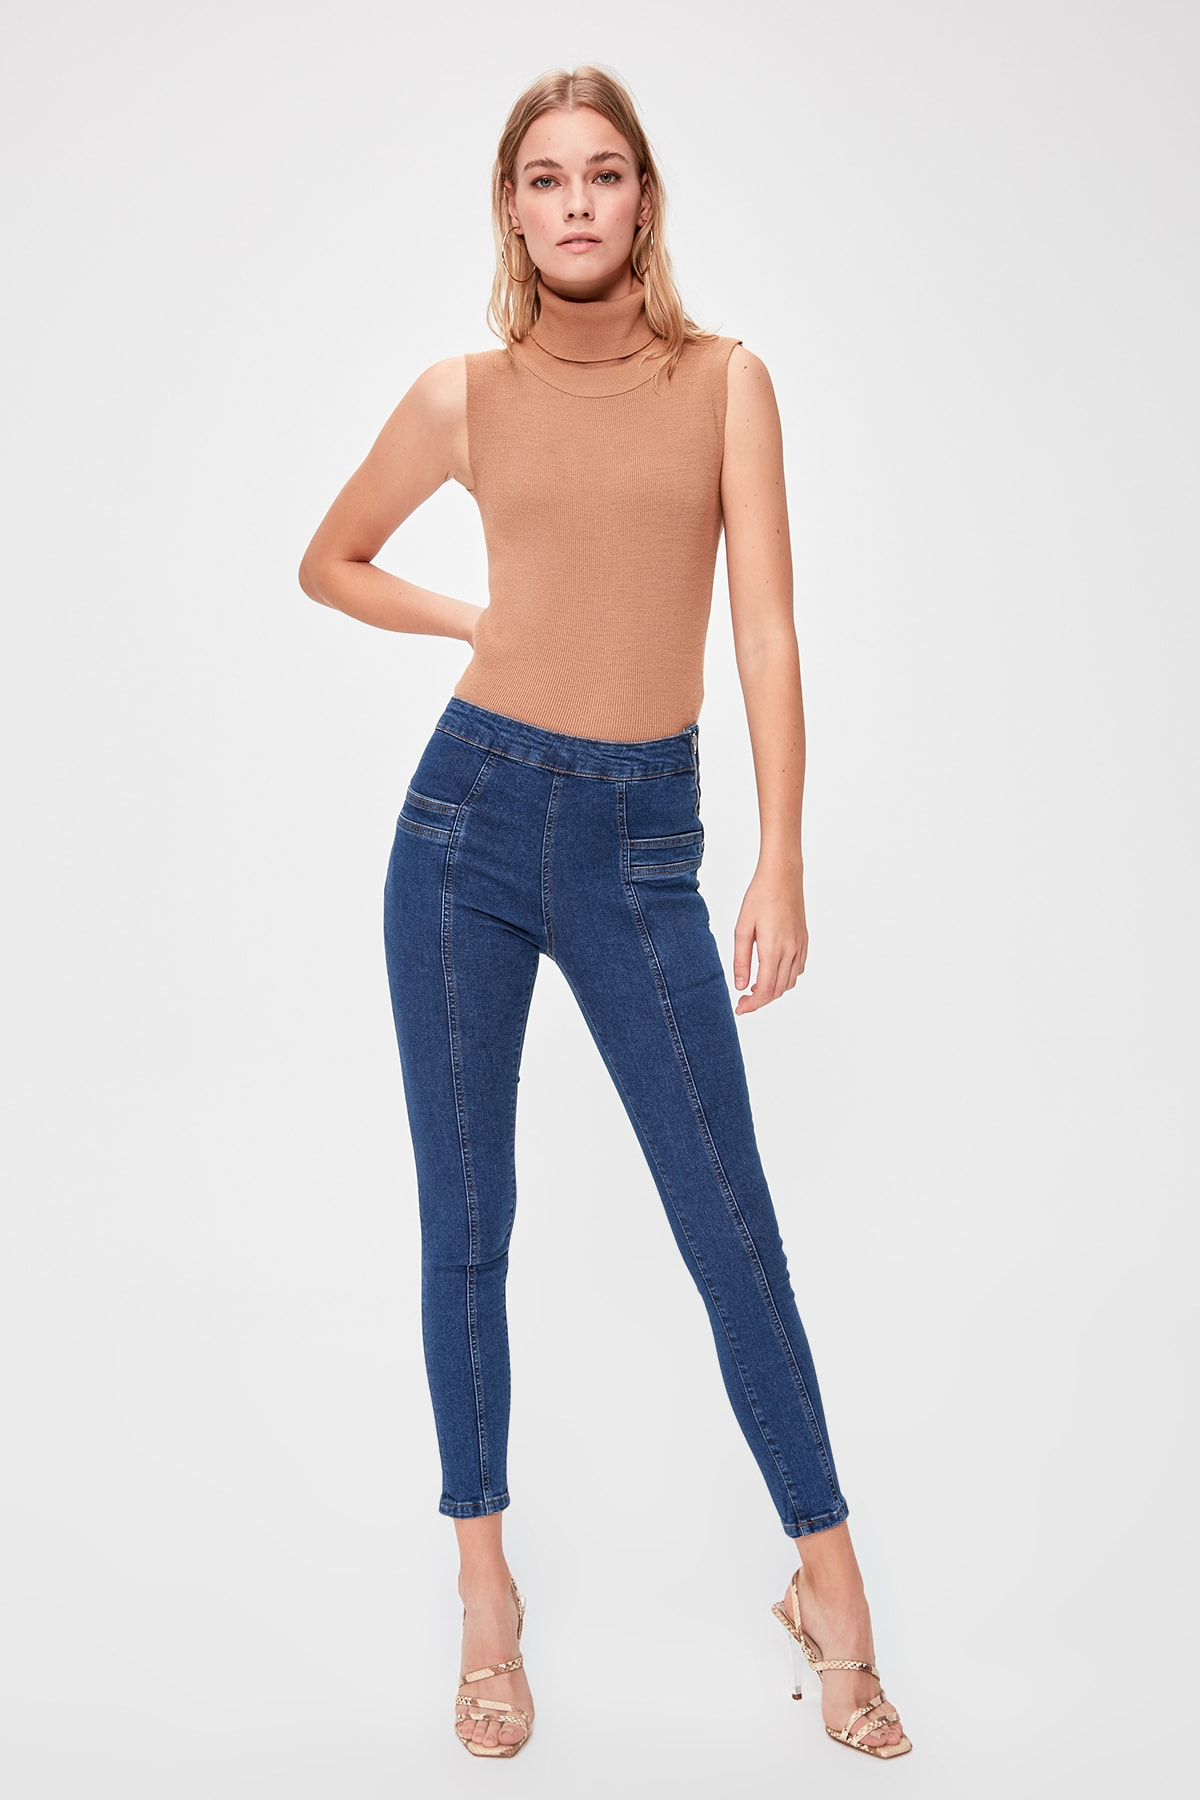 Trendyol Pocket Detail High Waist Jegging Jeans TWOAW20JE0147